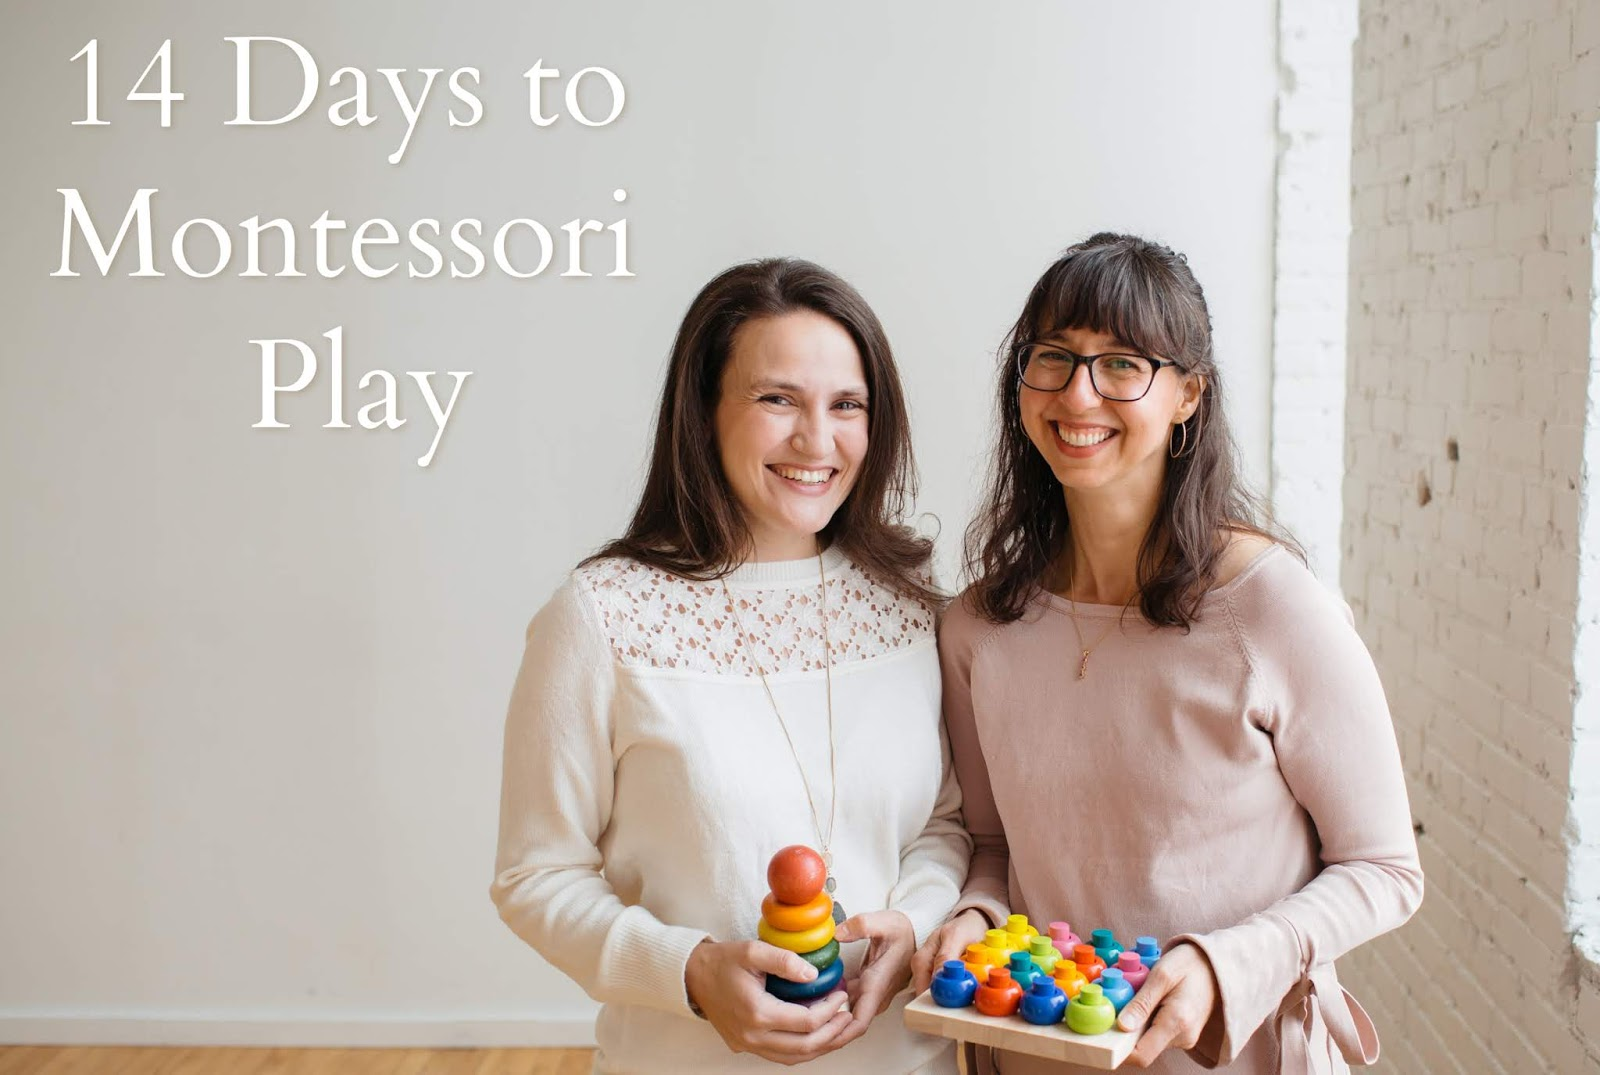 14 Days to Montessori Play is a parent's guide to better, more purposeful play! Come join to learn how to use Montessori's proven methods with your baby and toddler.